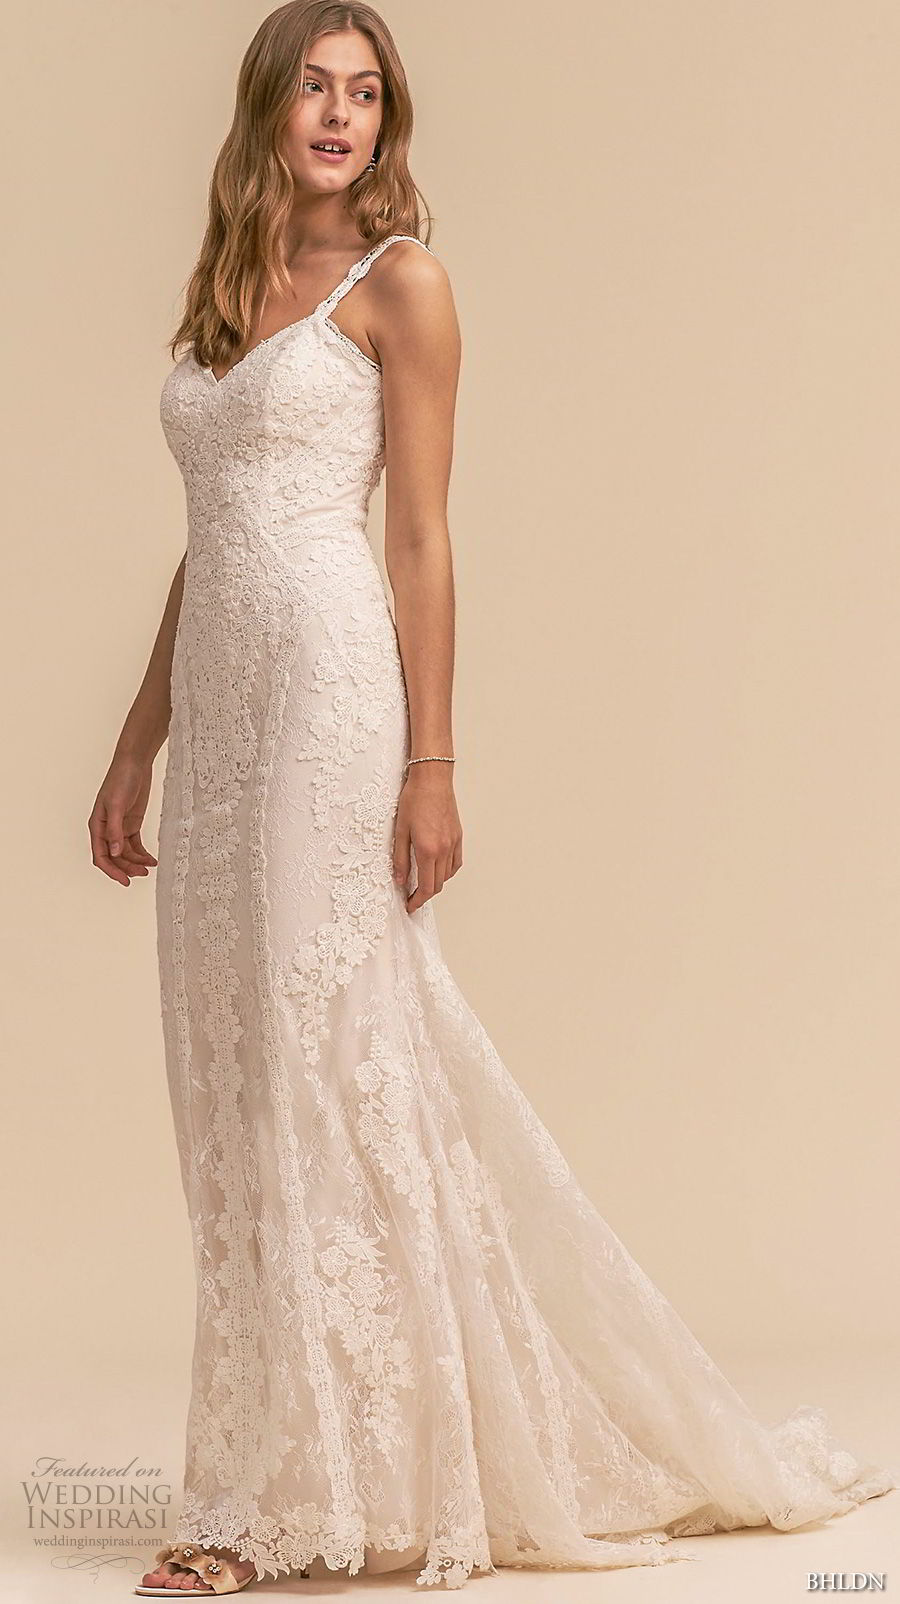 bhldn 2018 whispers bridal sleeveless thin strap sweetheart full embellishment elegant romantic sheath wedding dress sweep train (9) mv